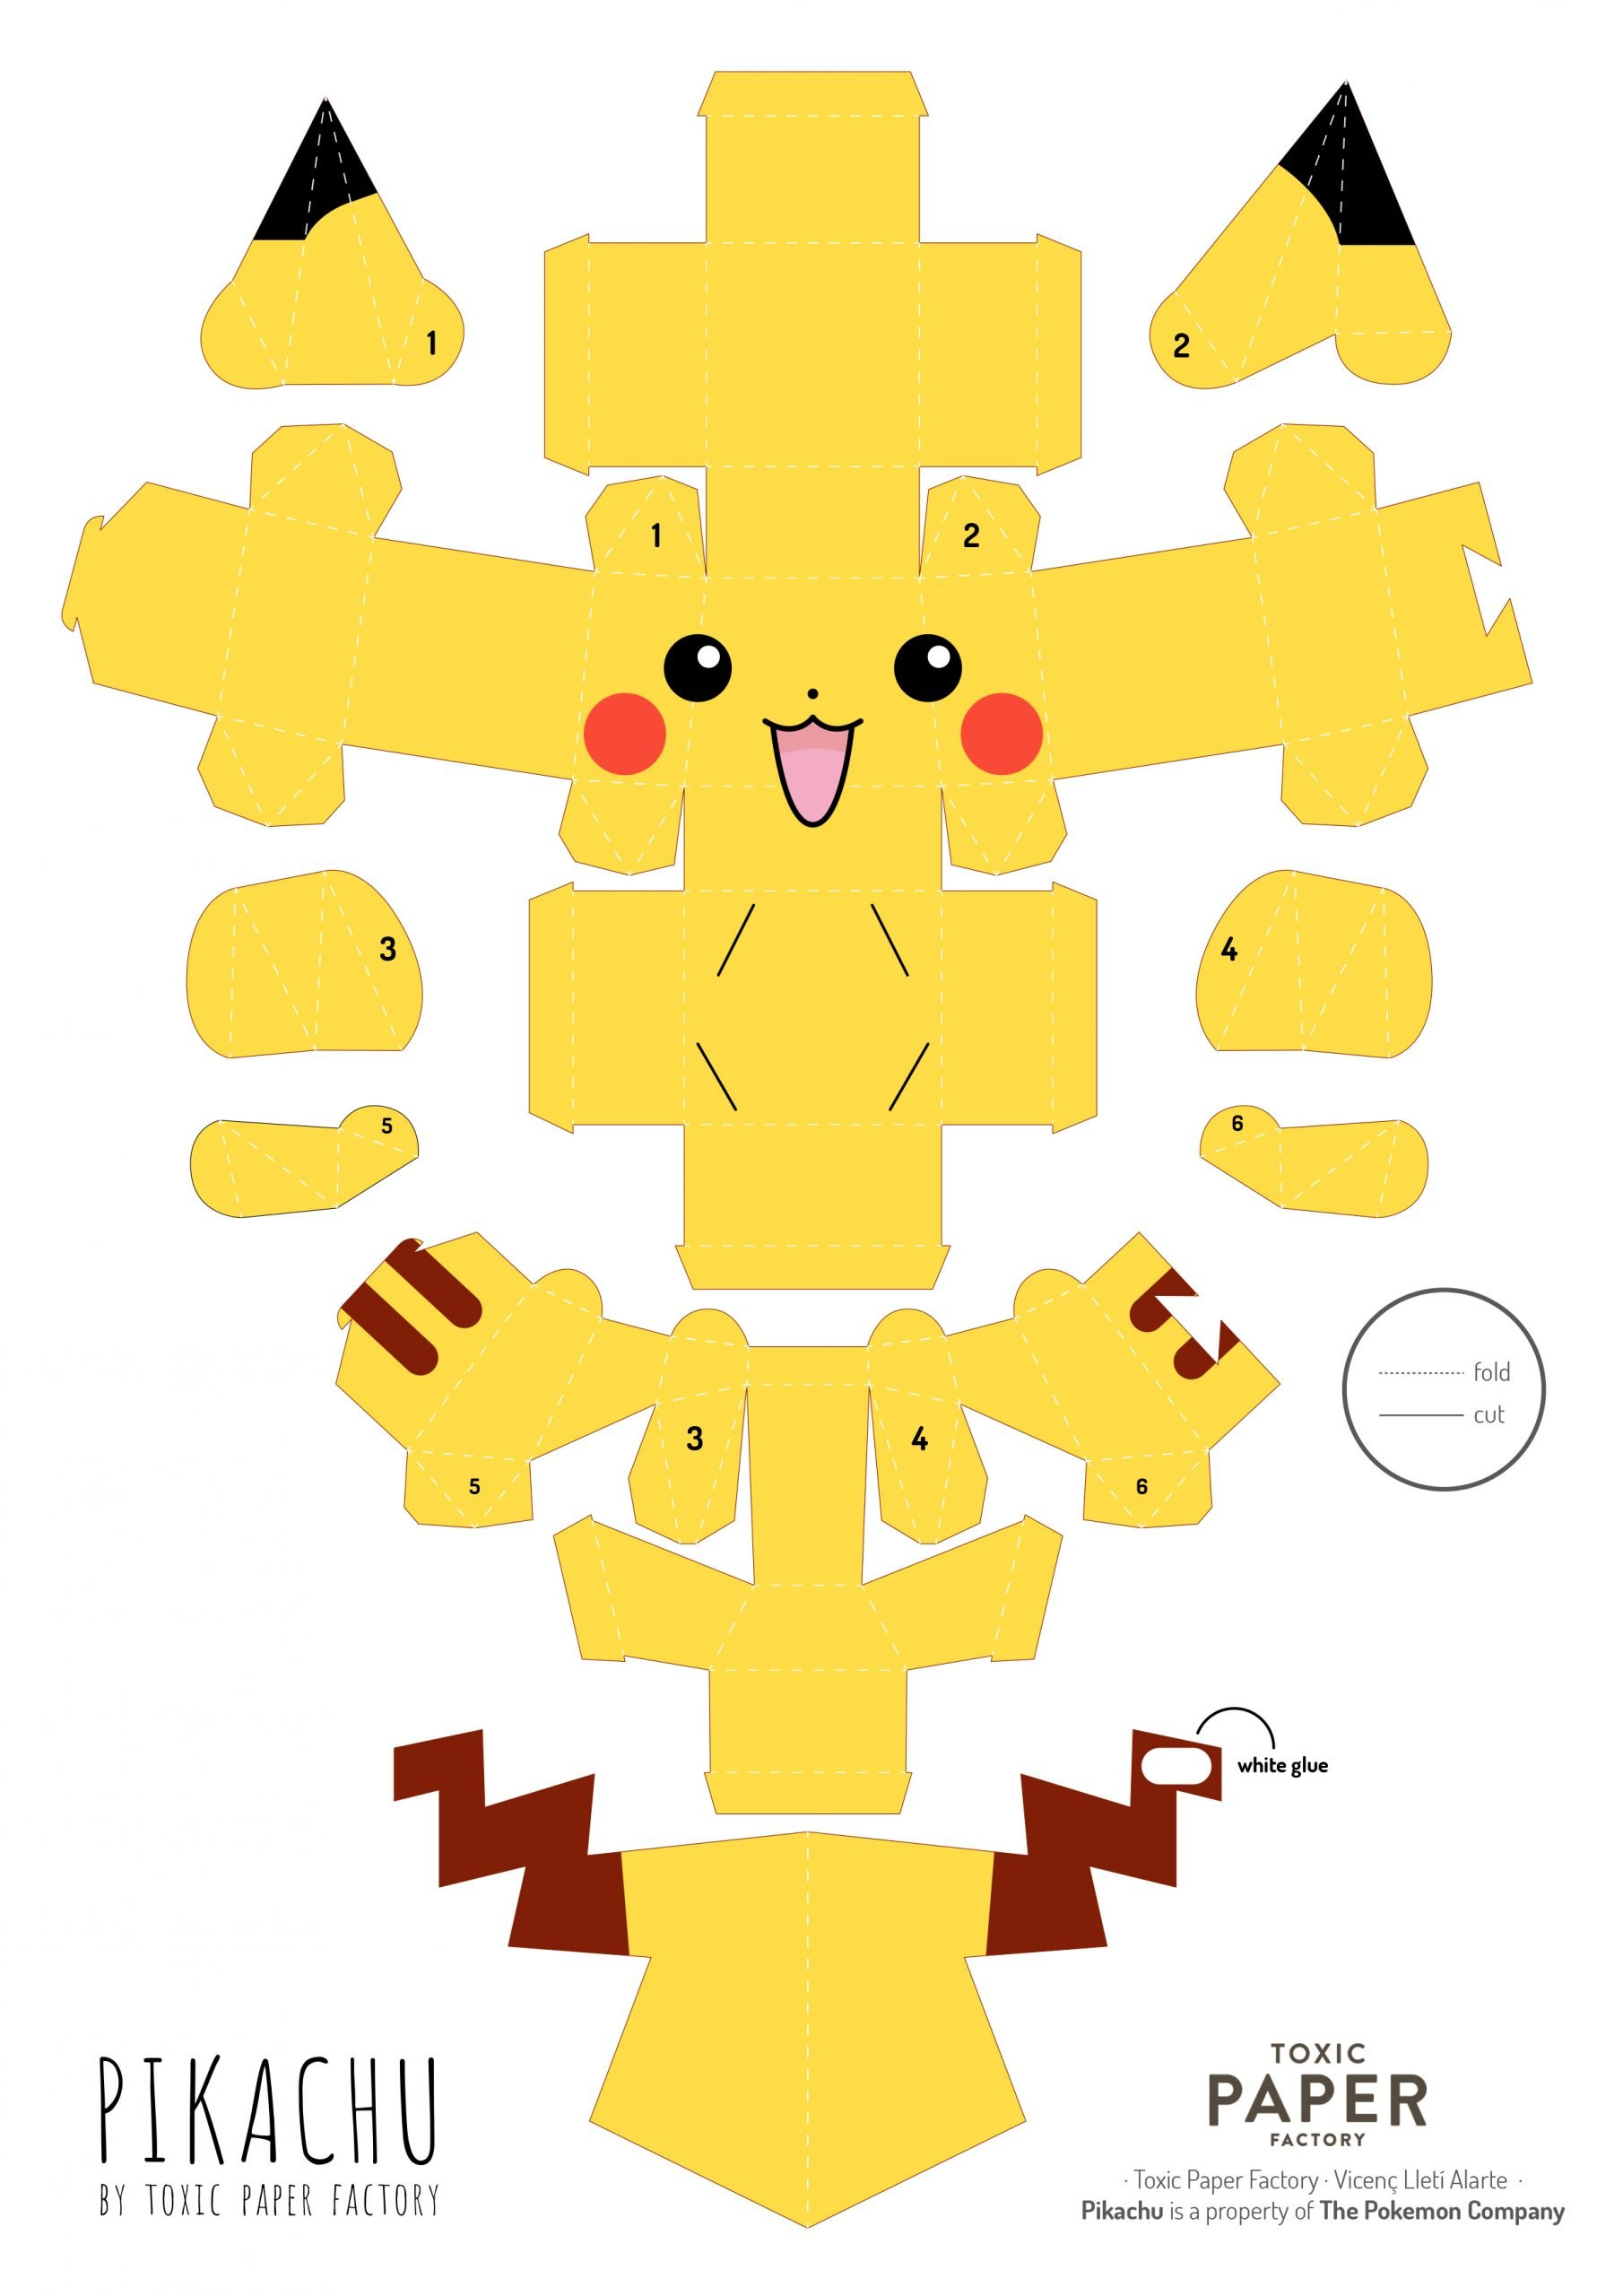 Paper-Toy Picachu